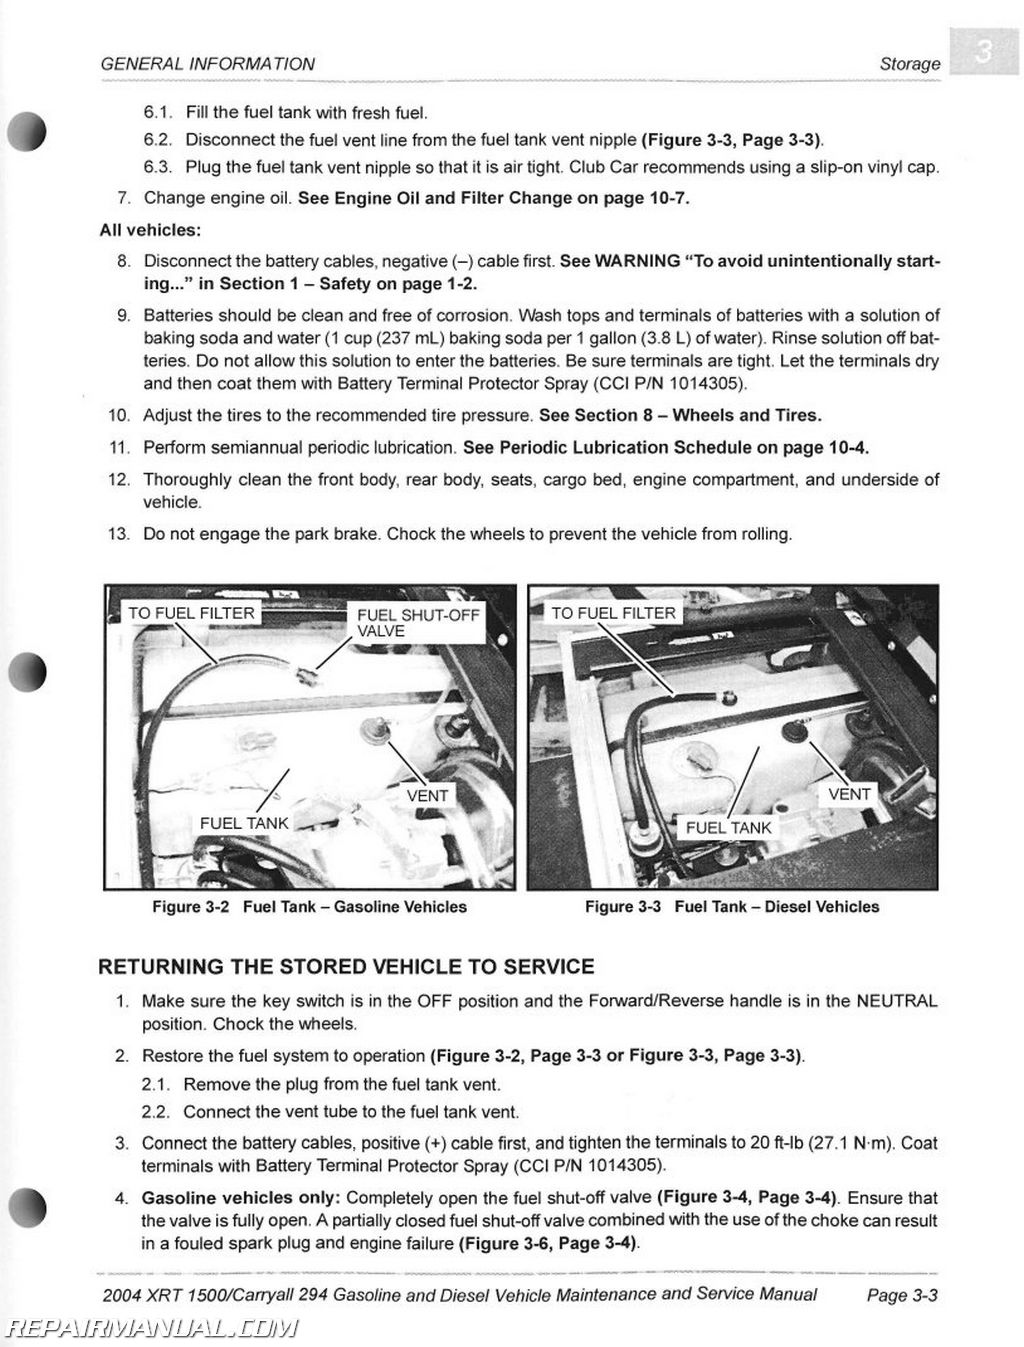 Astrostart Rs 613 Wiring Diagram 32 Images Harness 04 Astro Automate U2022 45 63 74 91 2004 Club Car Carryall 294 And Xrt 1500 Maintenance Service Manual Page 3resize